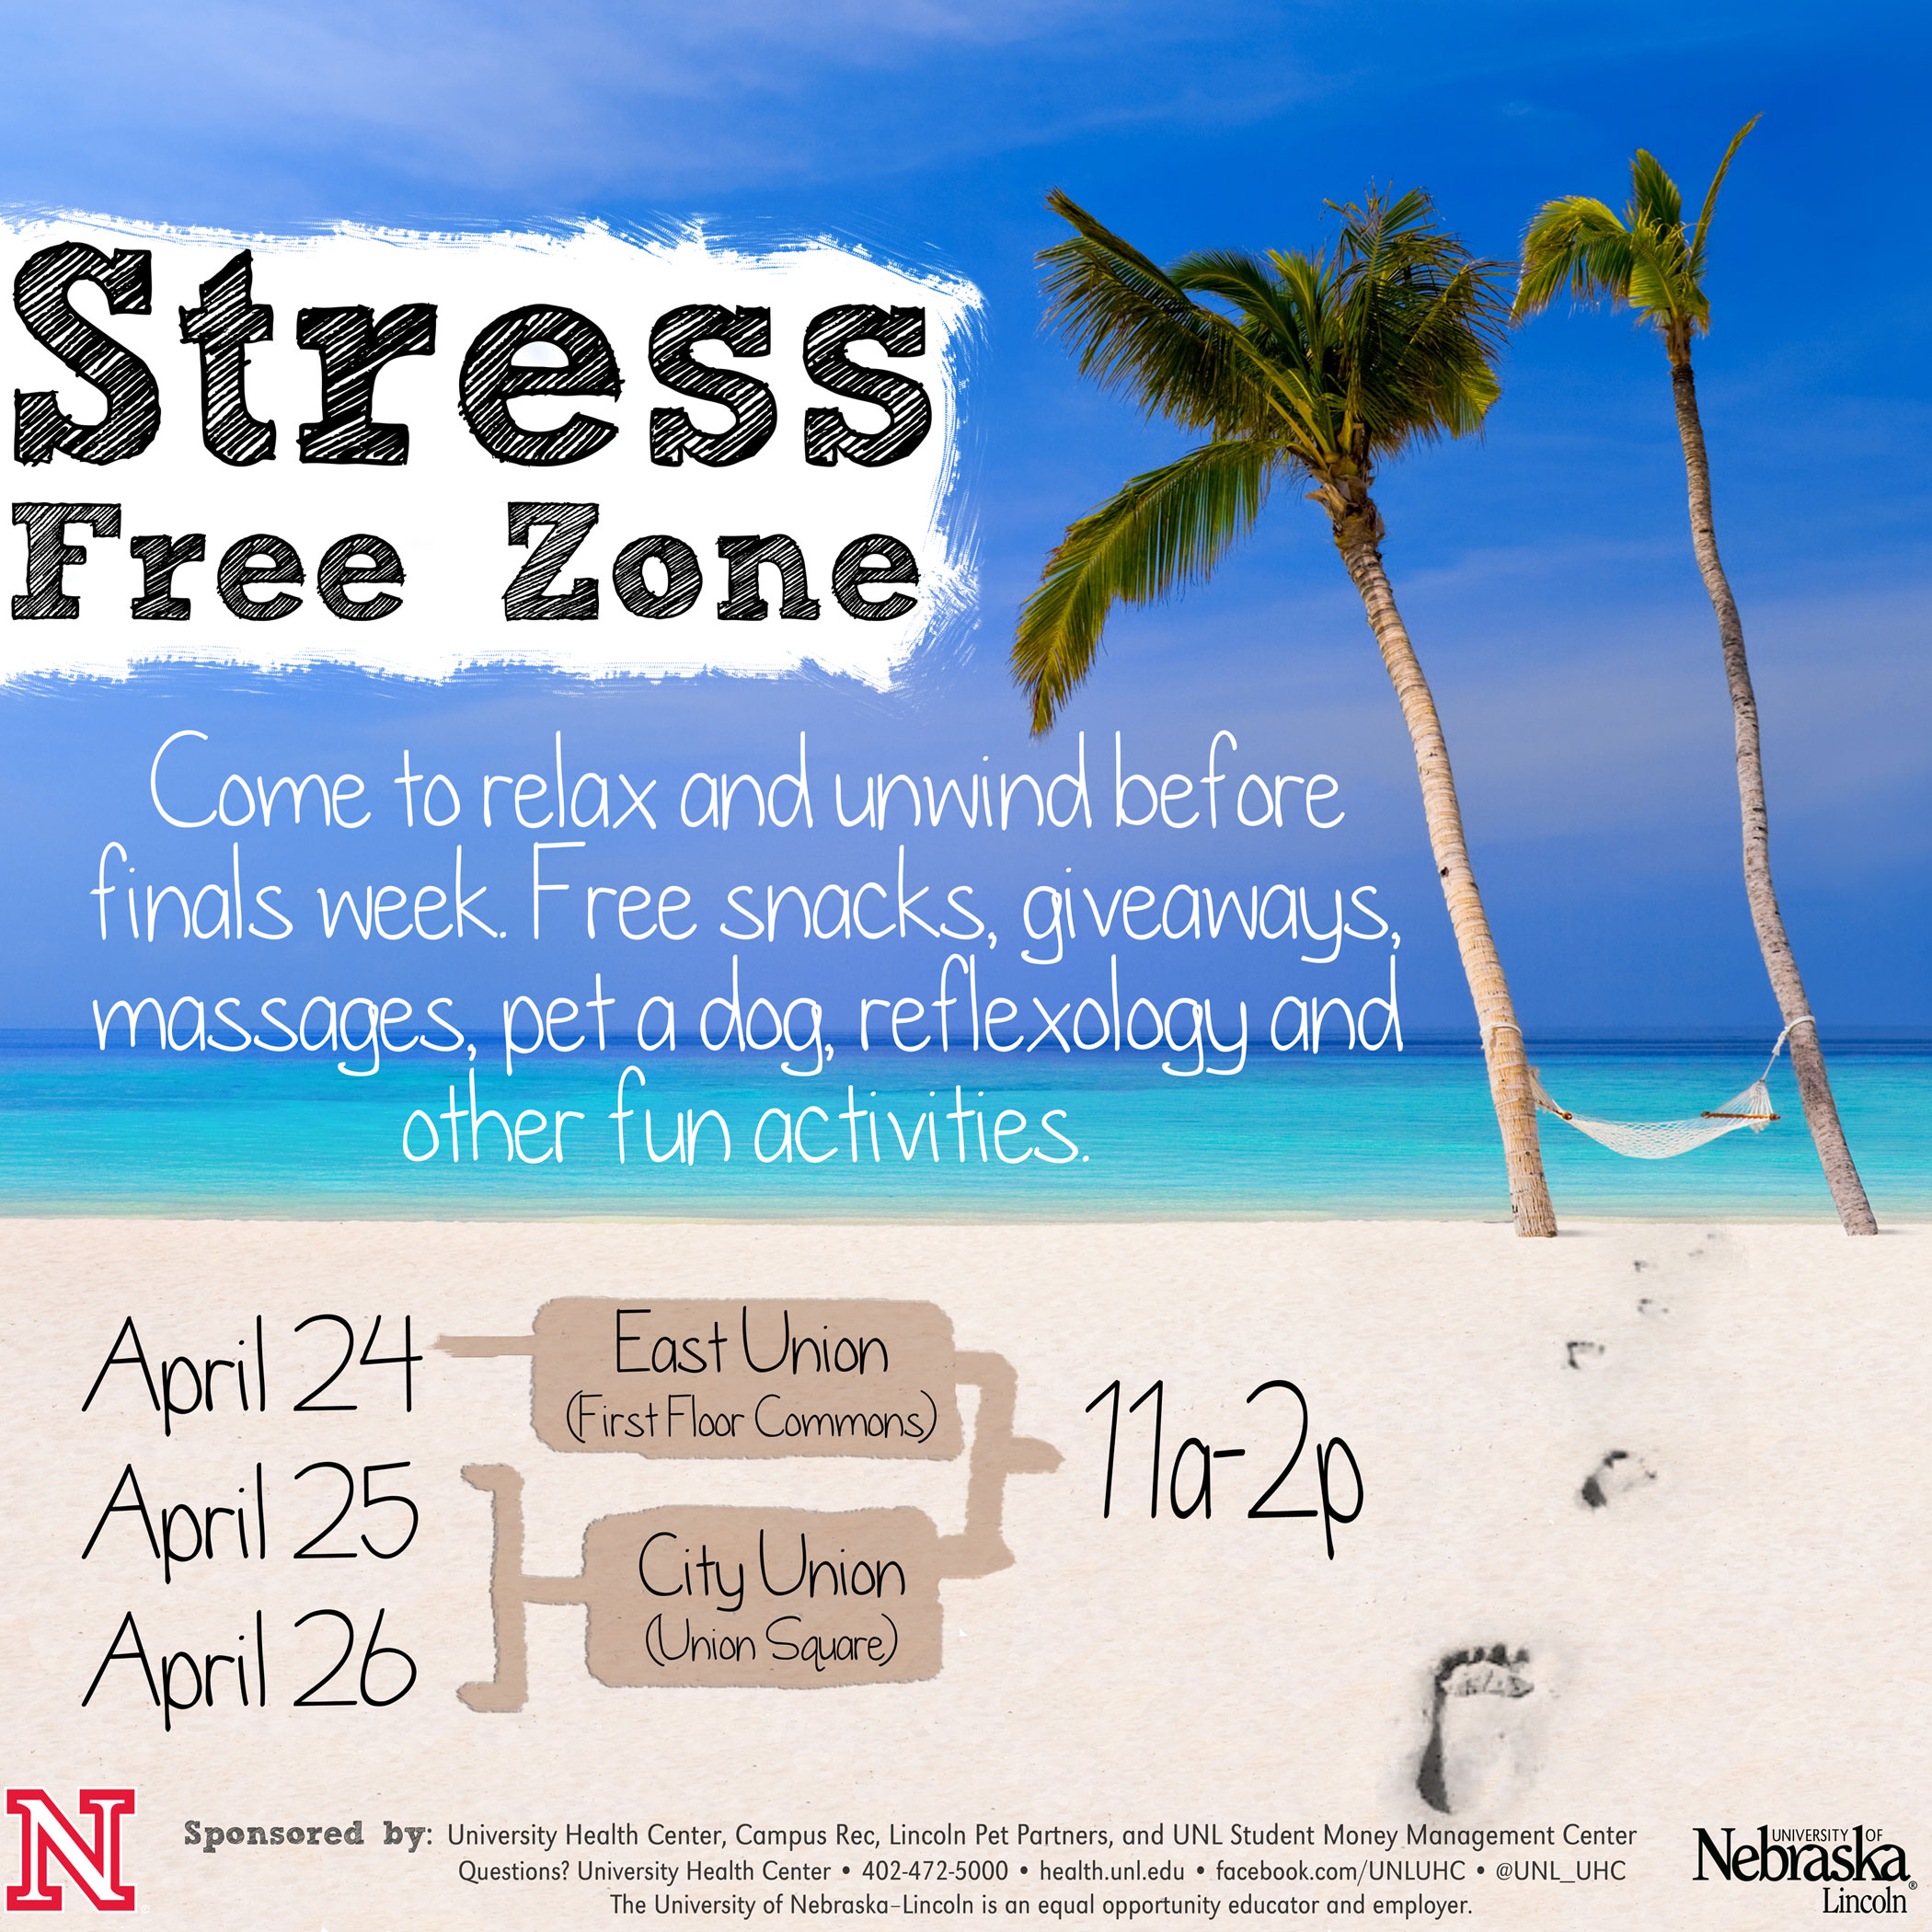 Step into the Stress Free Zone and relax before finals week.